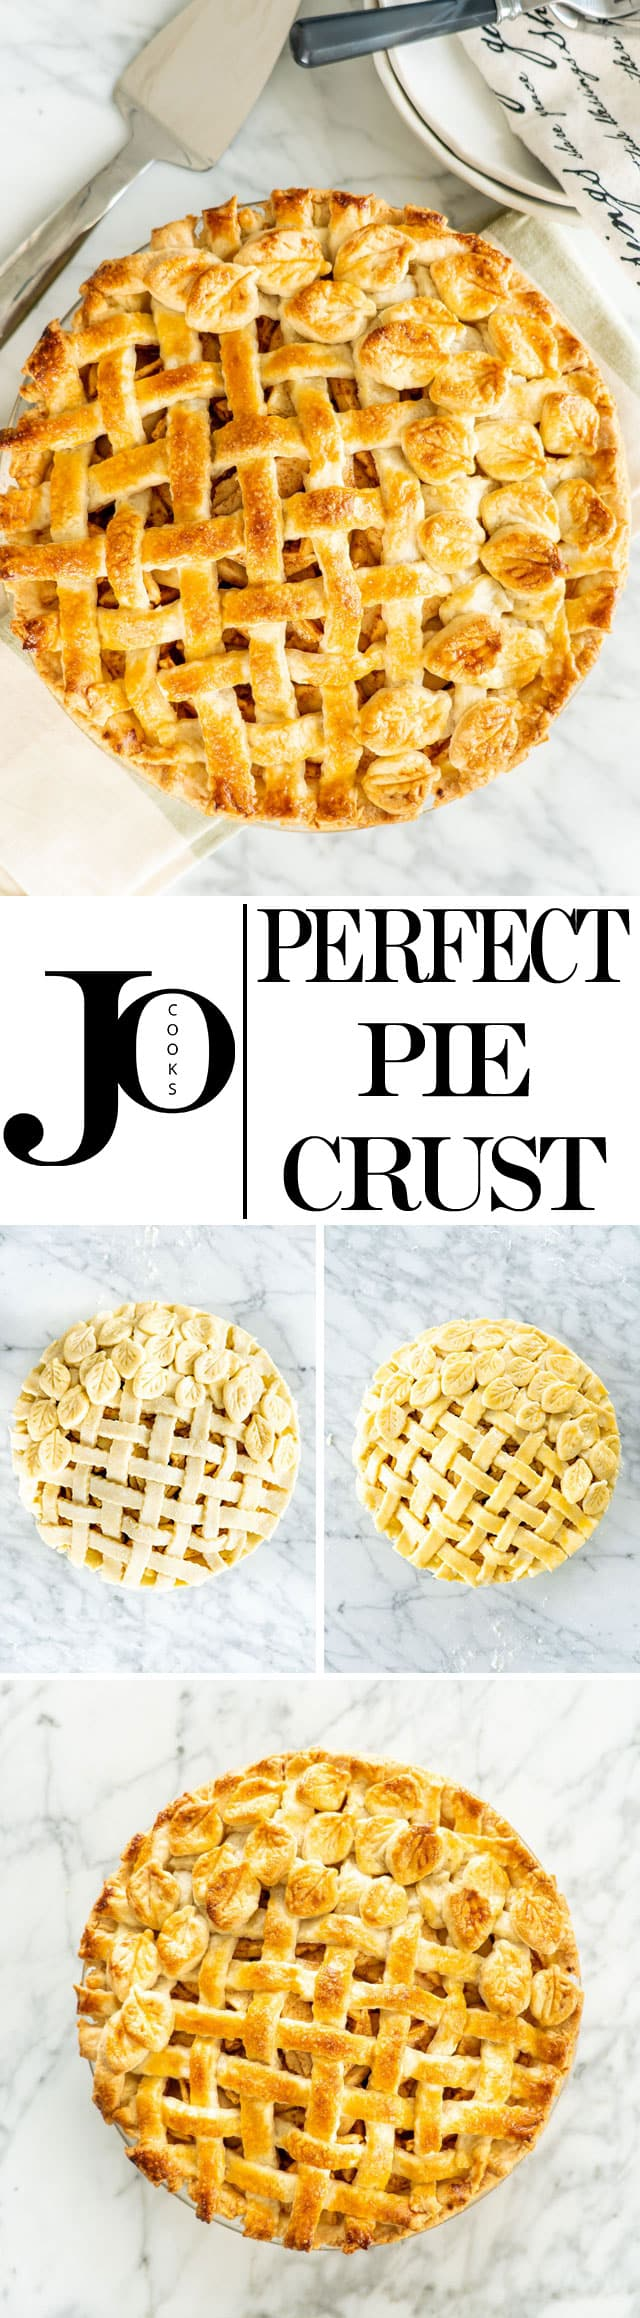 The Perfect Pie Crust Recipe requires only 5 ingredients and yields enough for both bottom and top crust.  This Pie Crust is buttery, flaky and is perfect for sweet or savory pies. #piecrust #pie